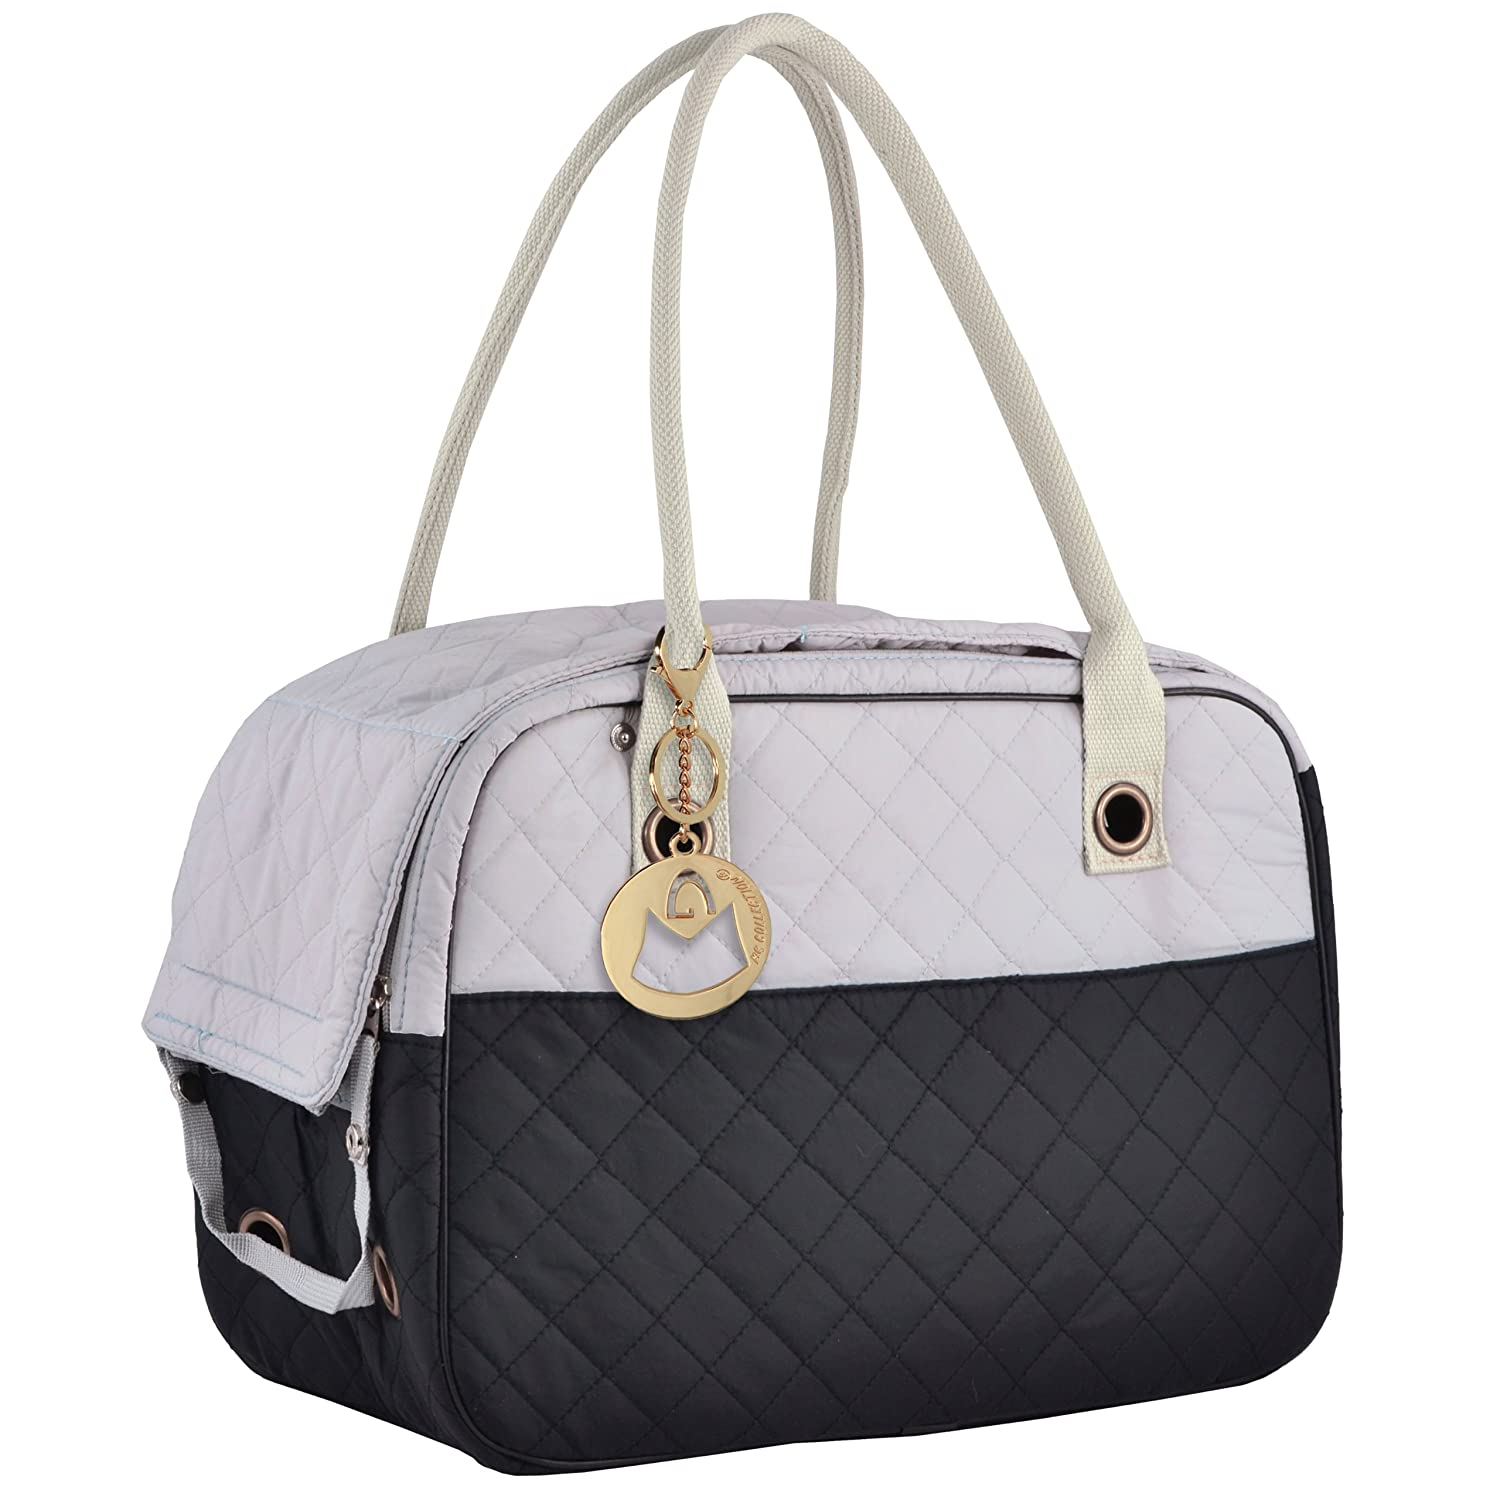 MG Collection Quilted Soft Sided Travel Pet Carrier Hand Bag